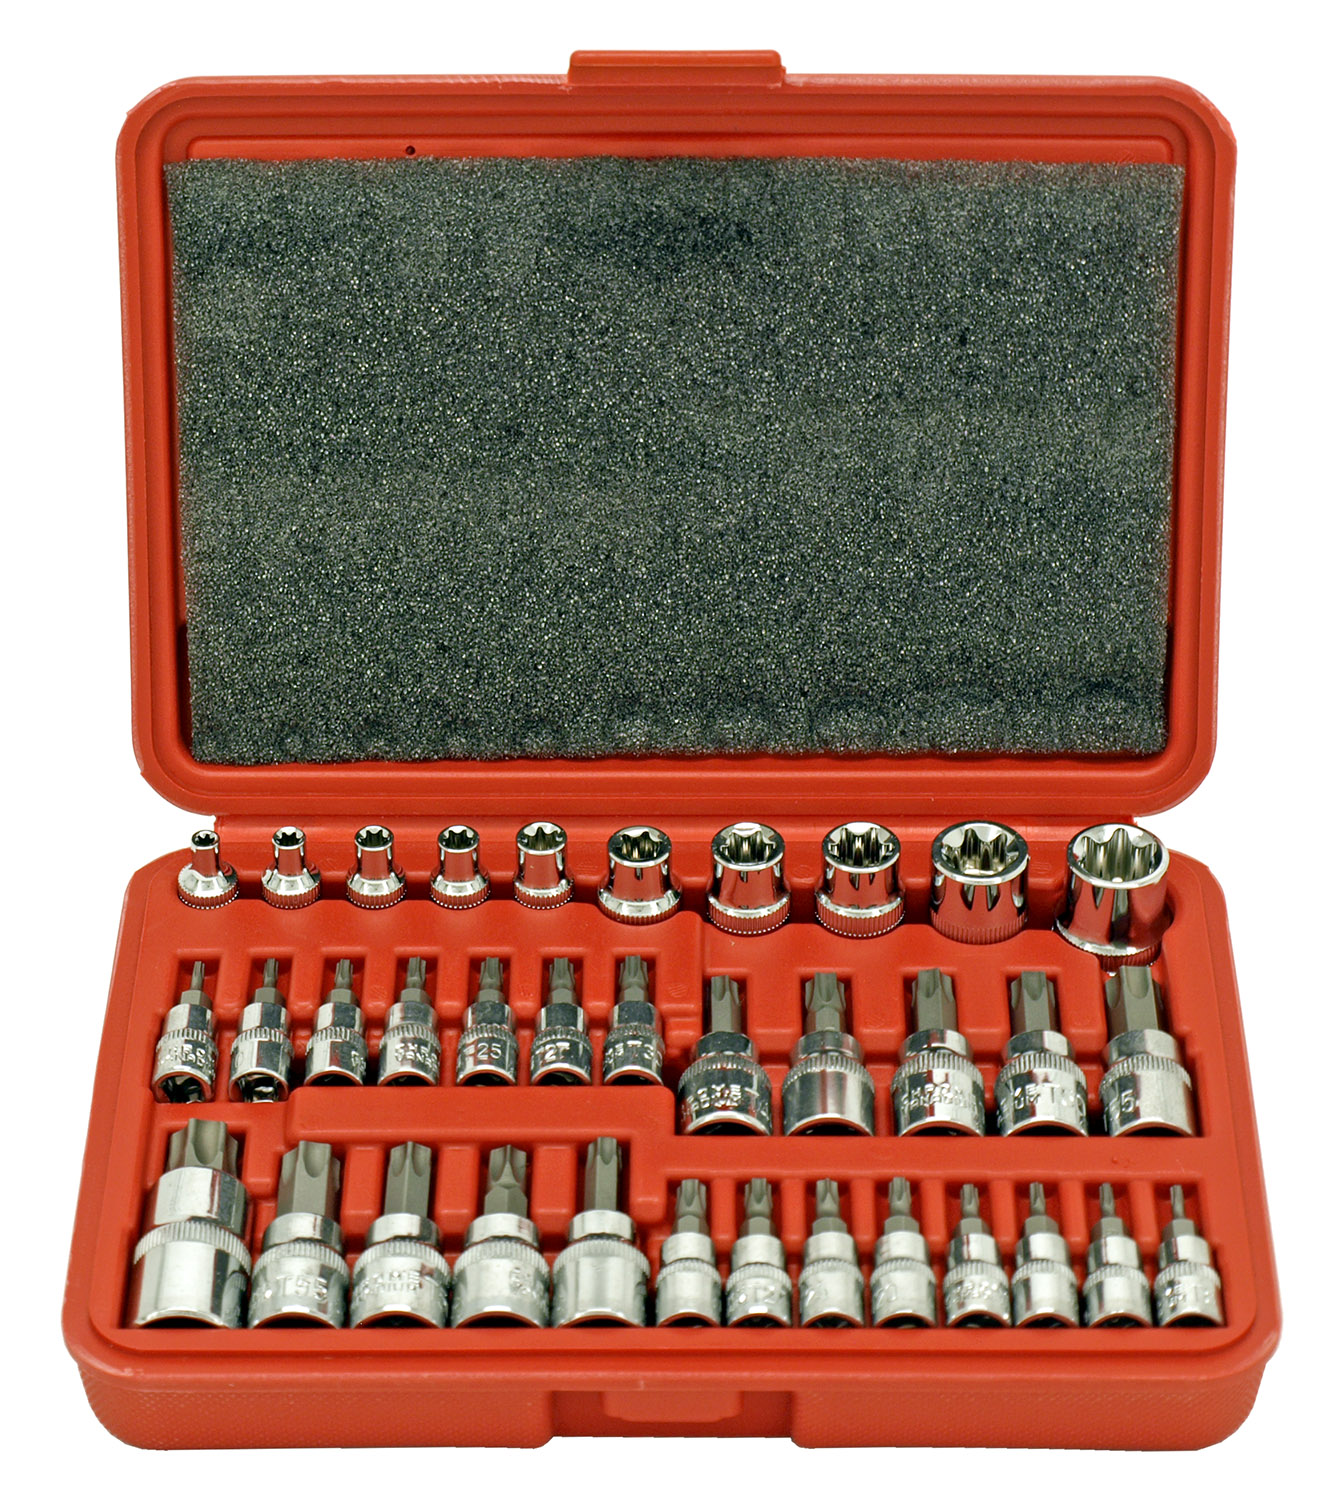 35 - pc. Star Bit and E-Socket Bit Set